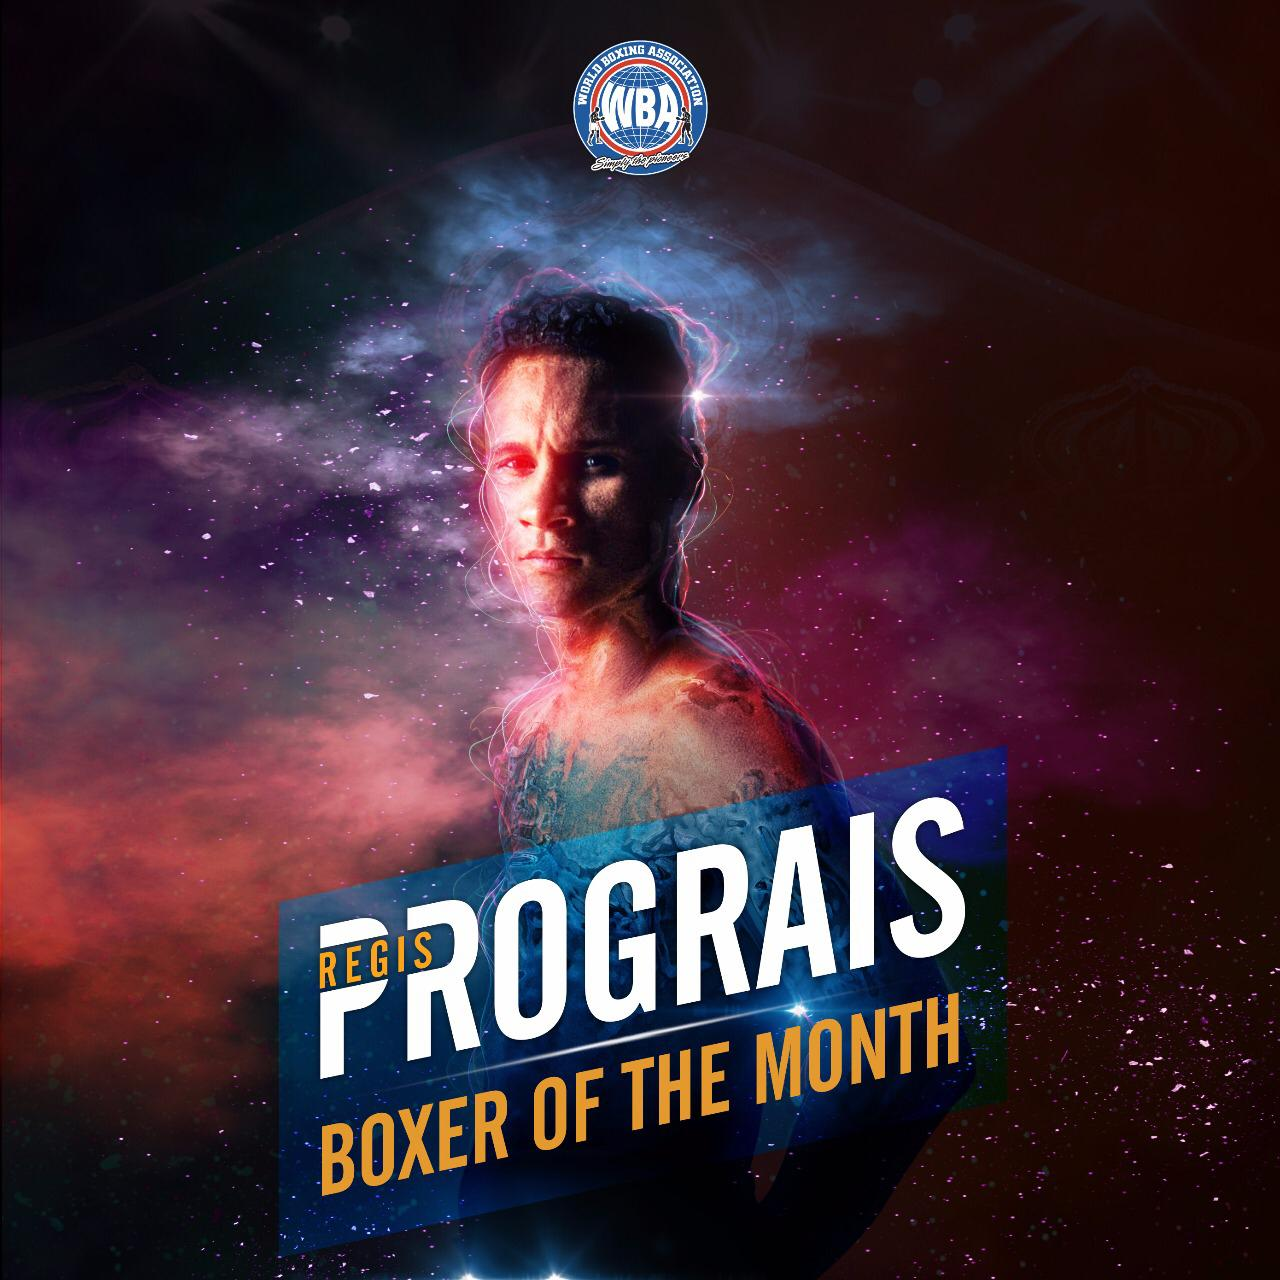 Regis Prograis is the WBA boxer of the month